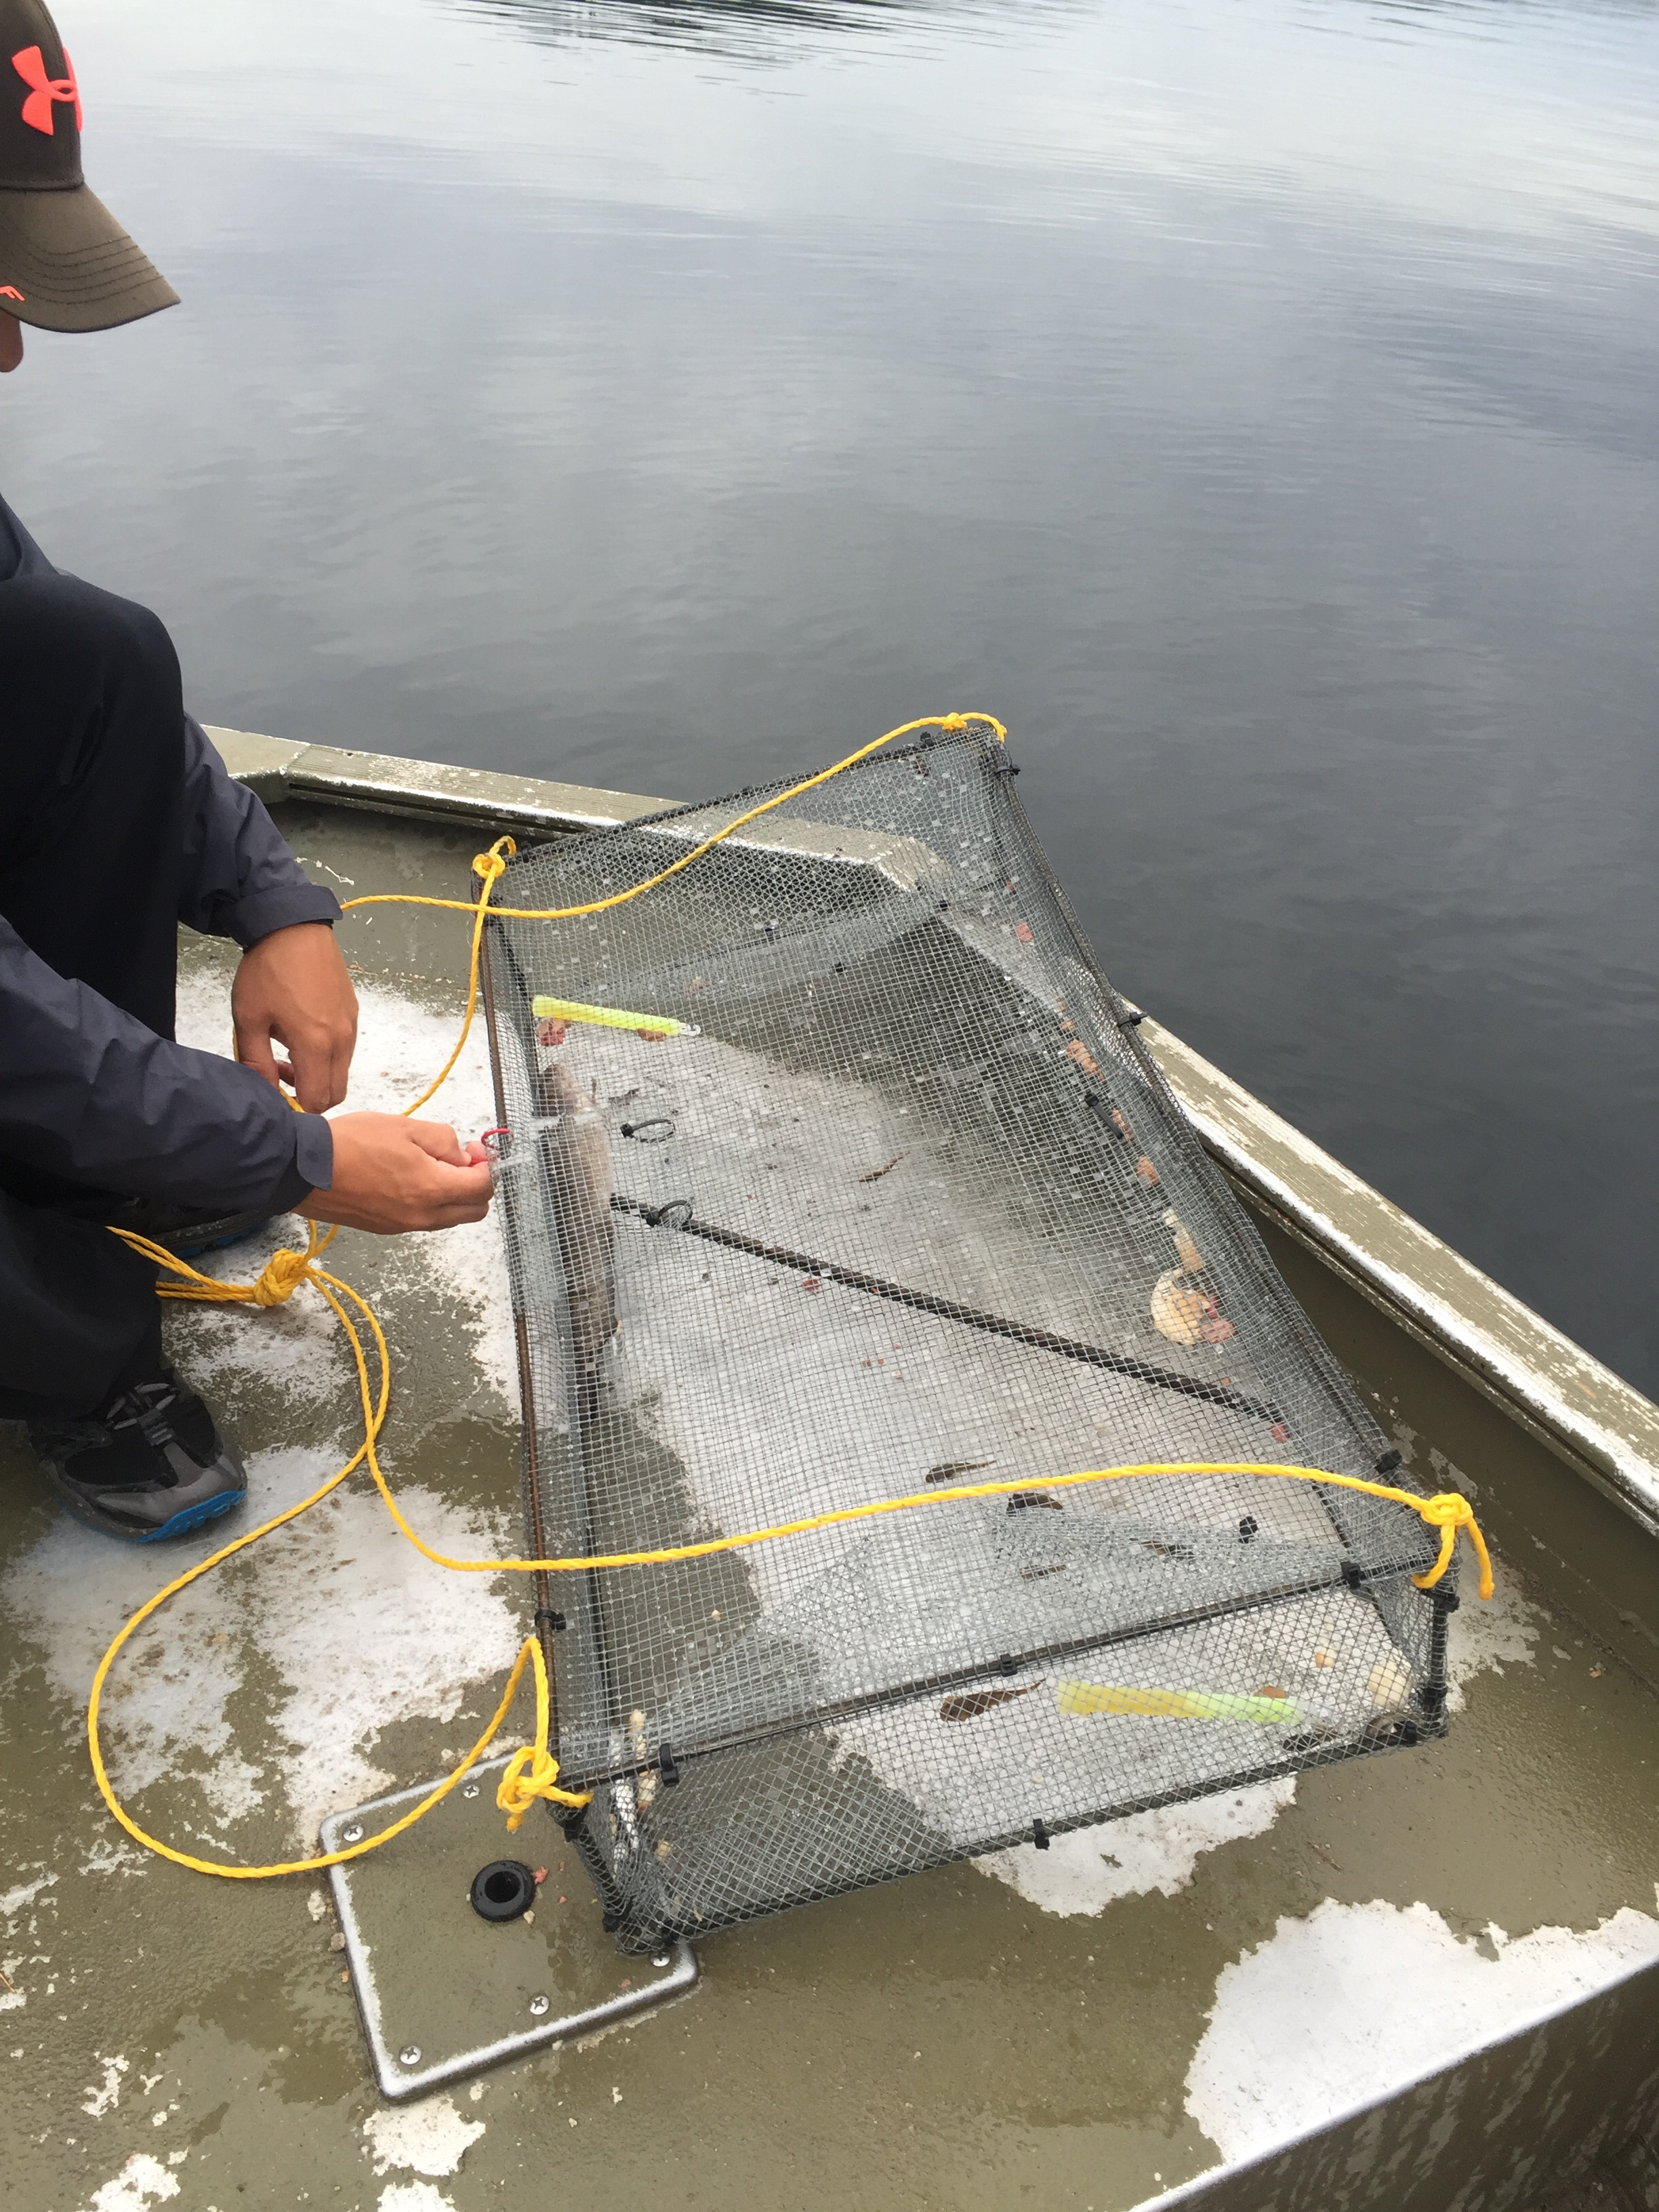 Custom made minnow traps for capturing Deepwater Sculpin